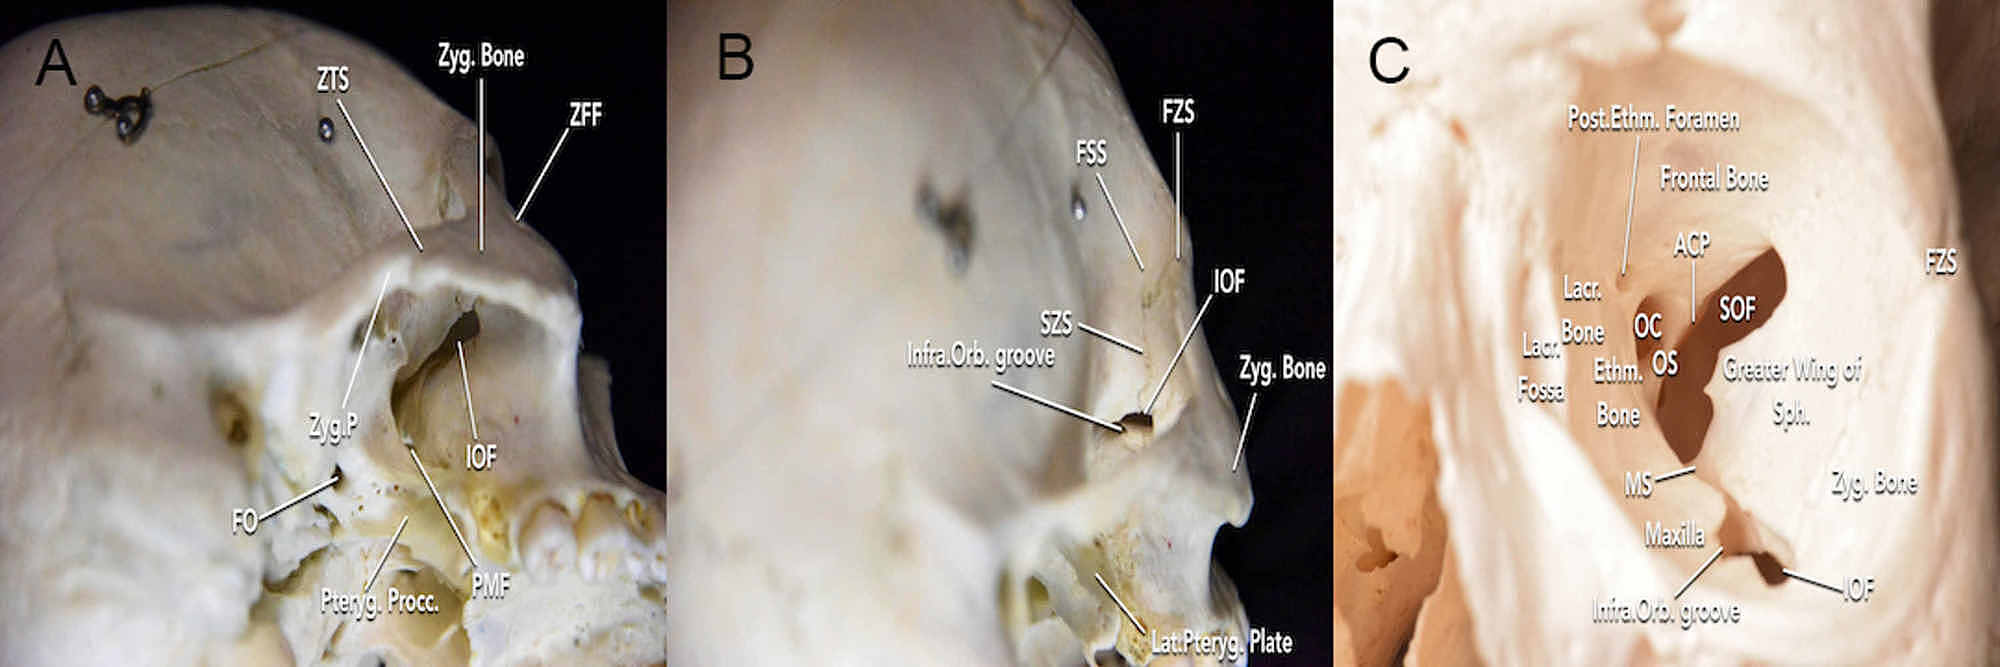 https://www.cureus.com/articles/23943-immersive-surgical-anatomy-of-the-frontotemporal-orbitozygomatic-approach